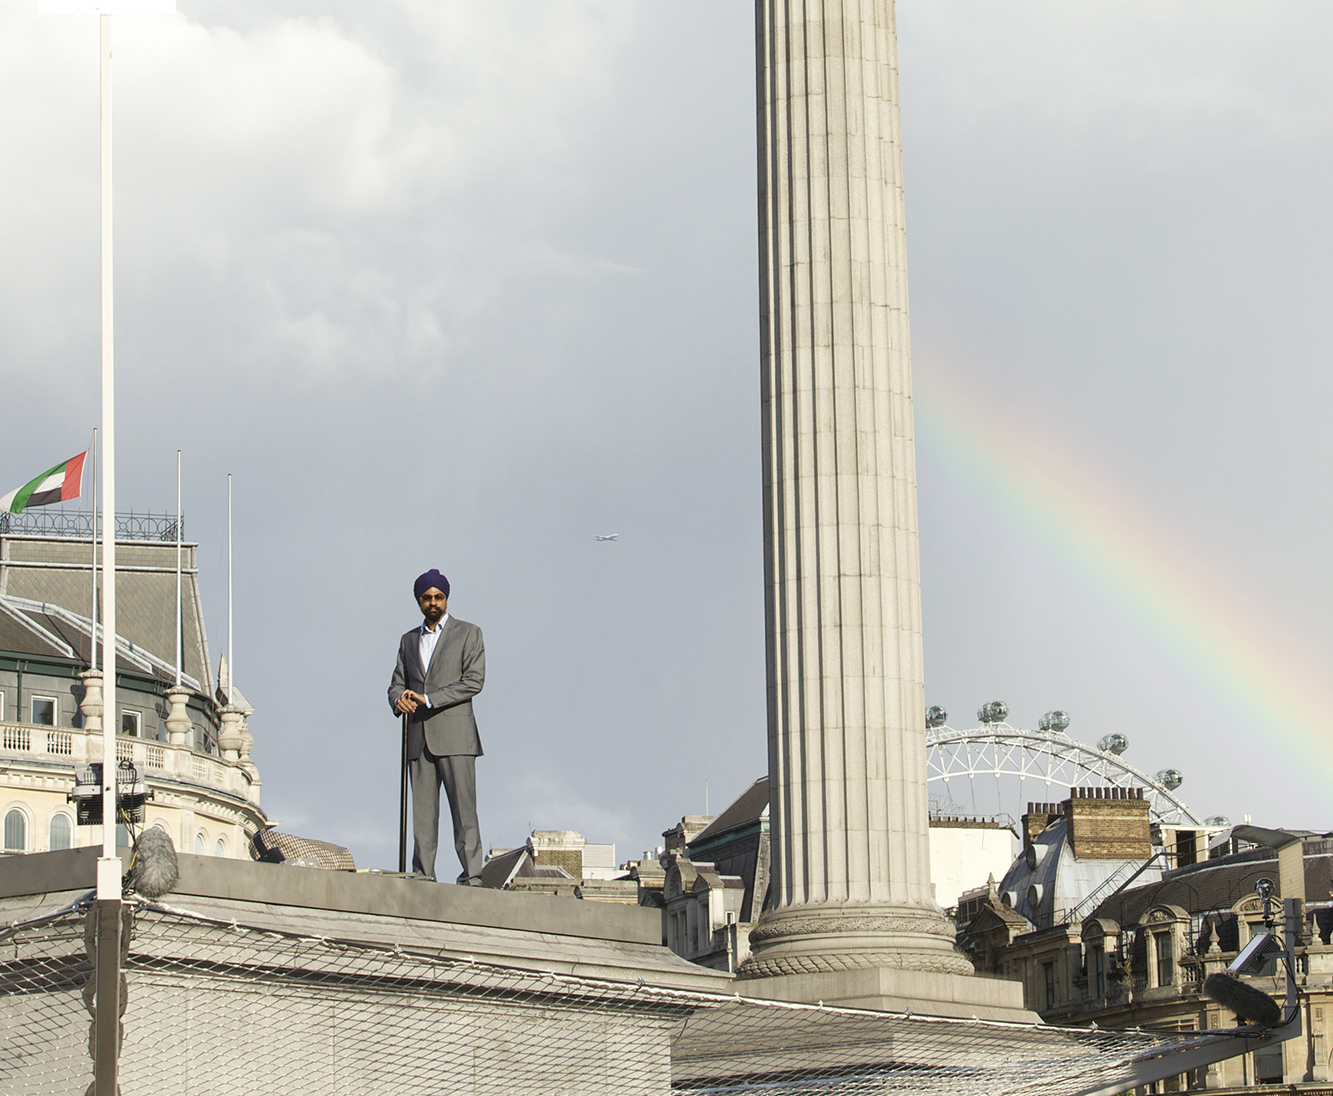 Man standing atop the plinth with a rainbow in the background